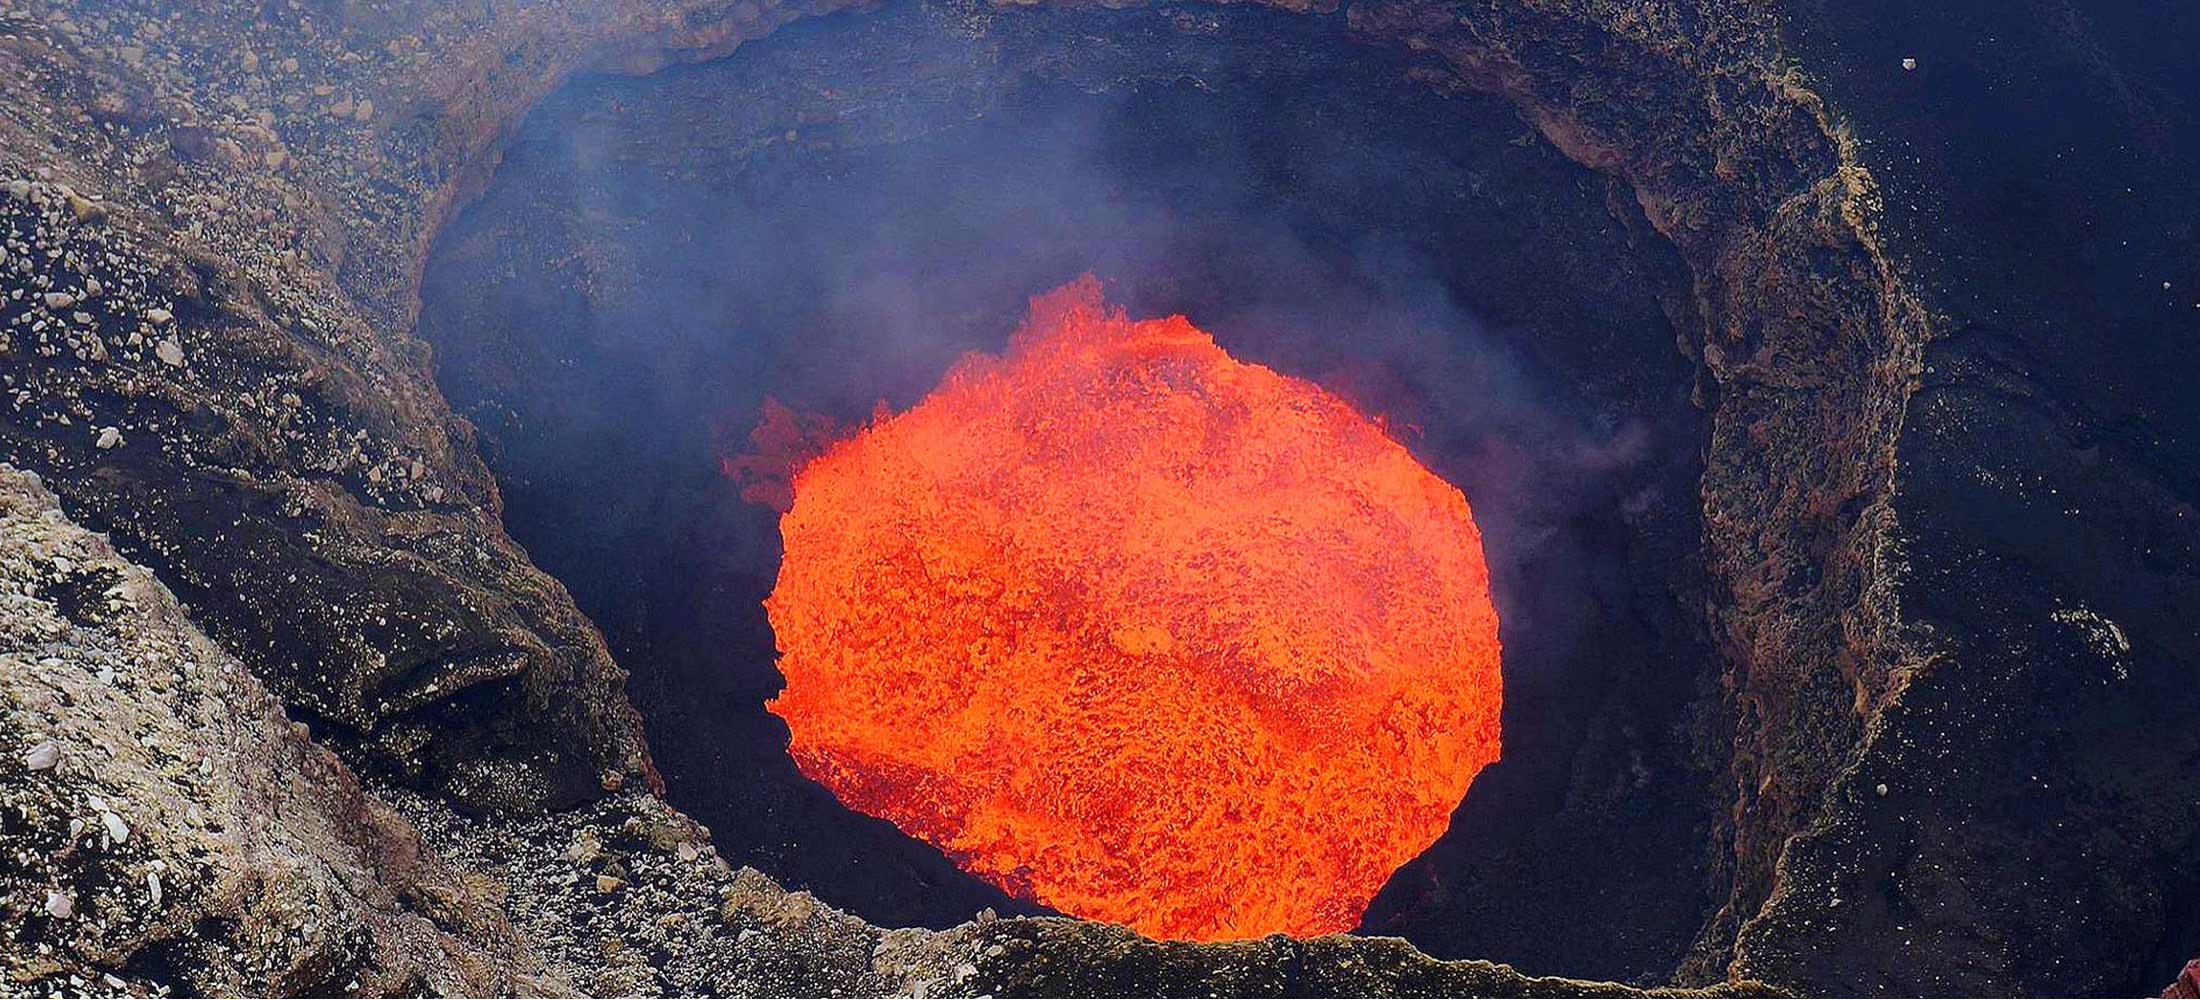 South Pacific Tours Vanuatu - Yasur volcano